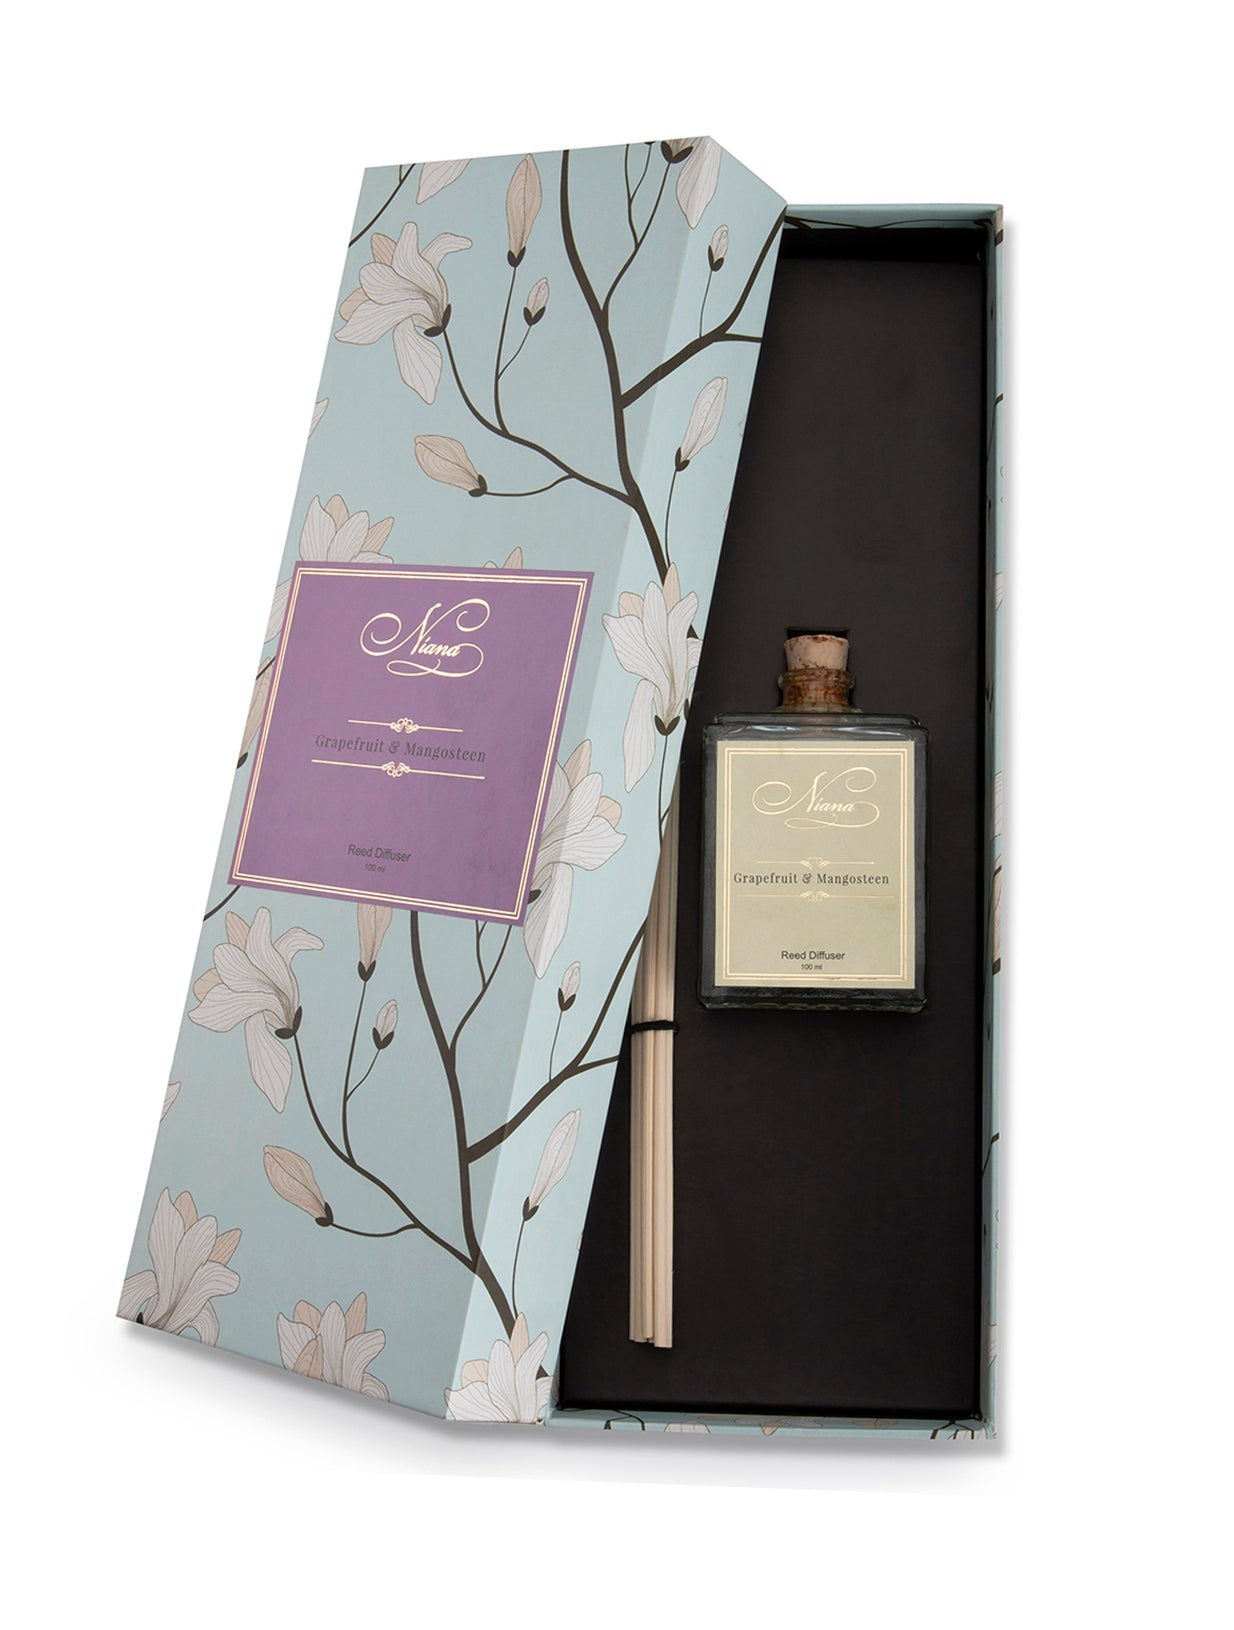 Niana Grapefruit and Mangosteen Reed Diffuser 100ml